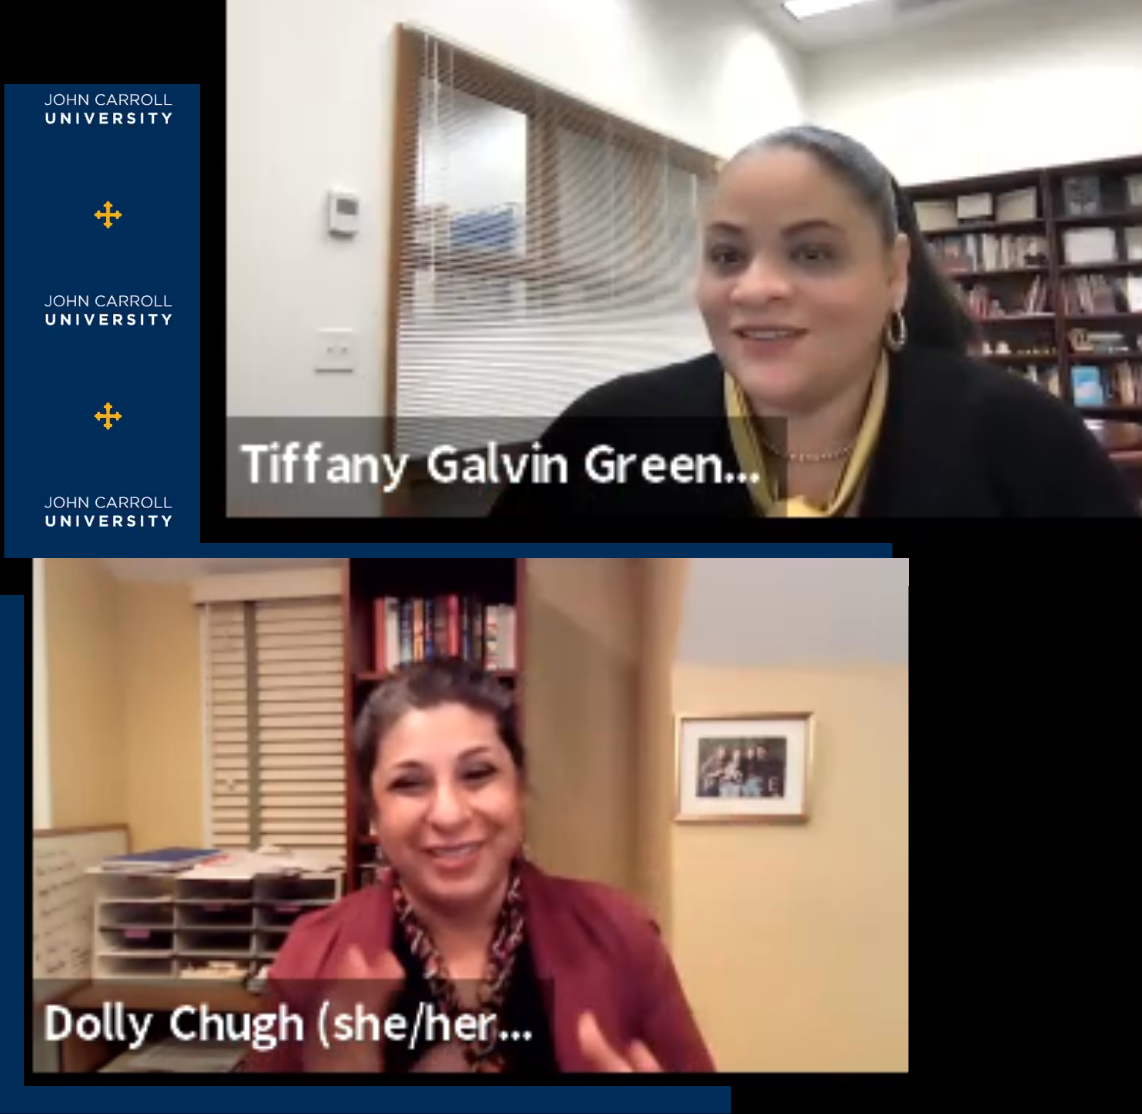 Screenshots from virtual talk on January 26 - images of Dolly Chugh and Tiffany Galvin Green